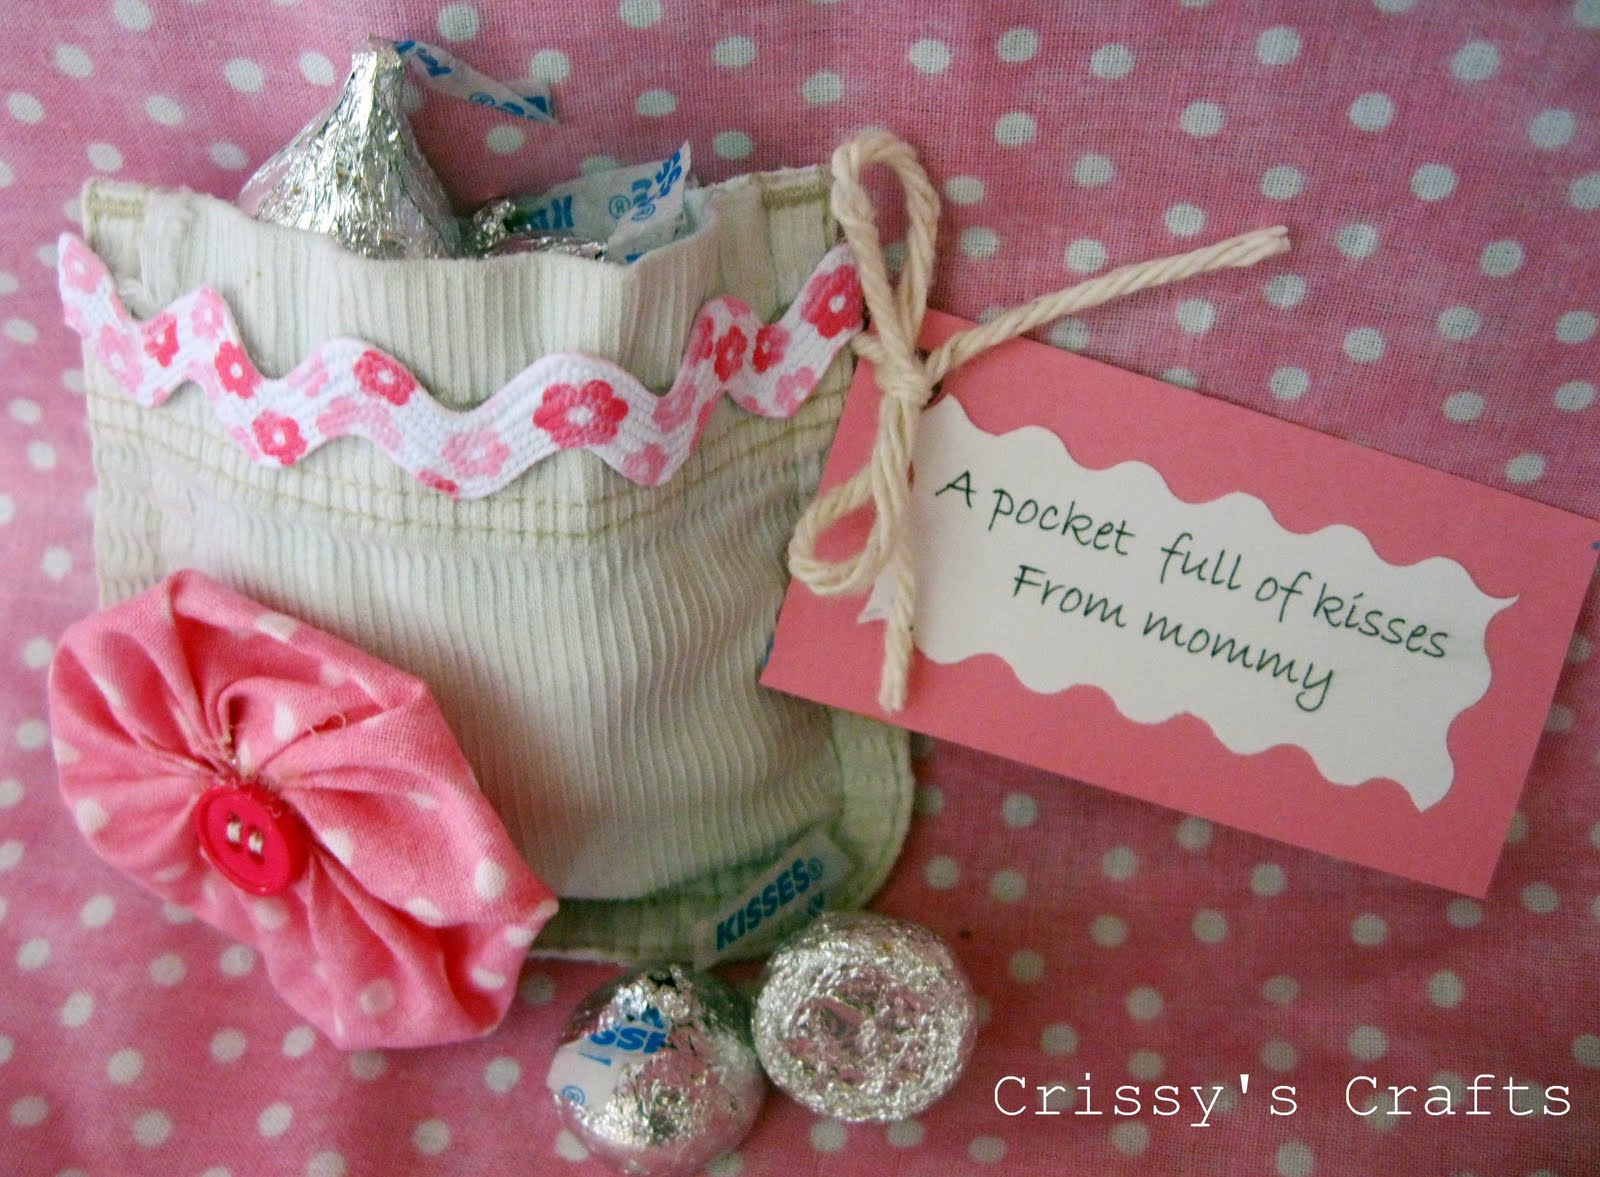 Crissy's Crafts: A Pocket Full of Kisses